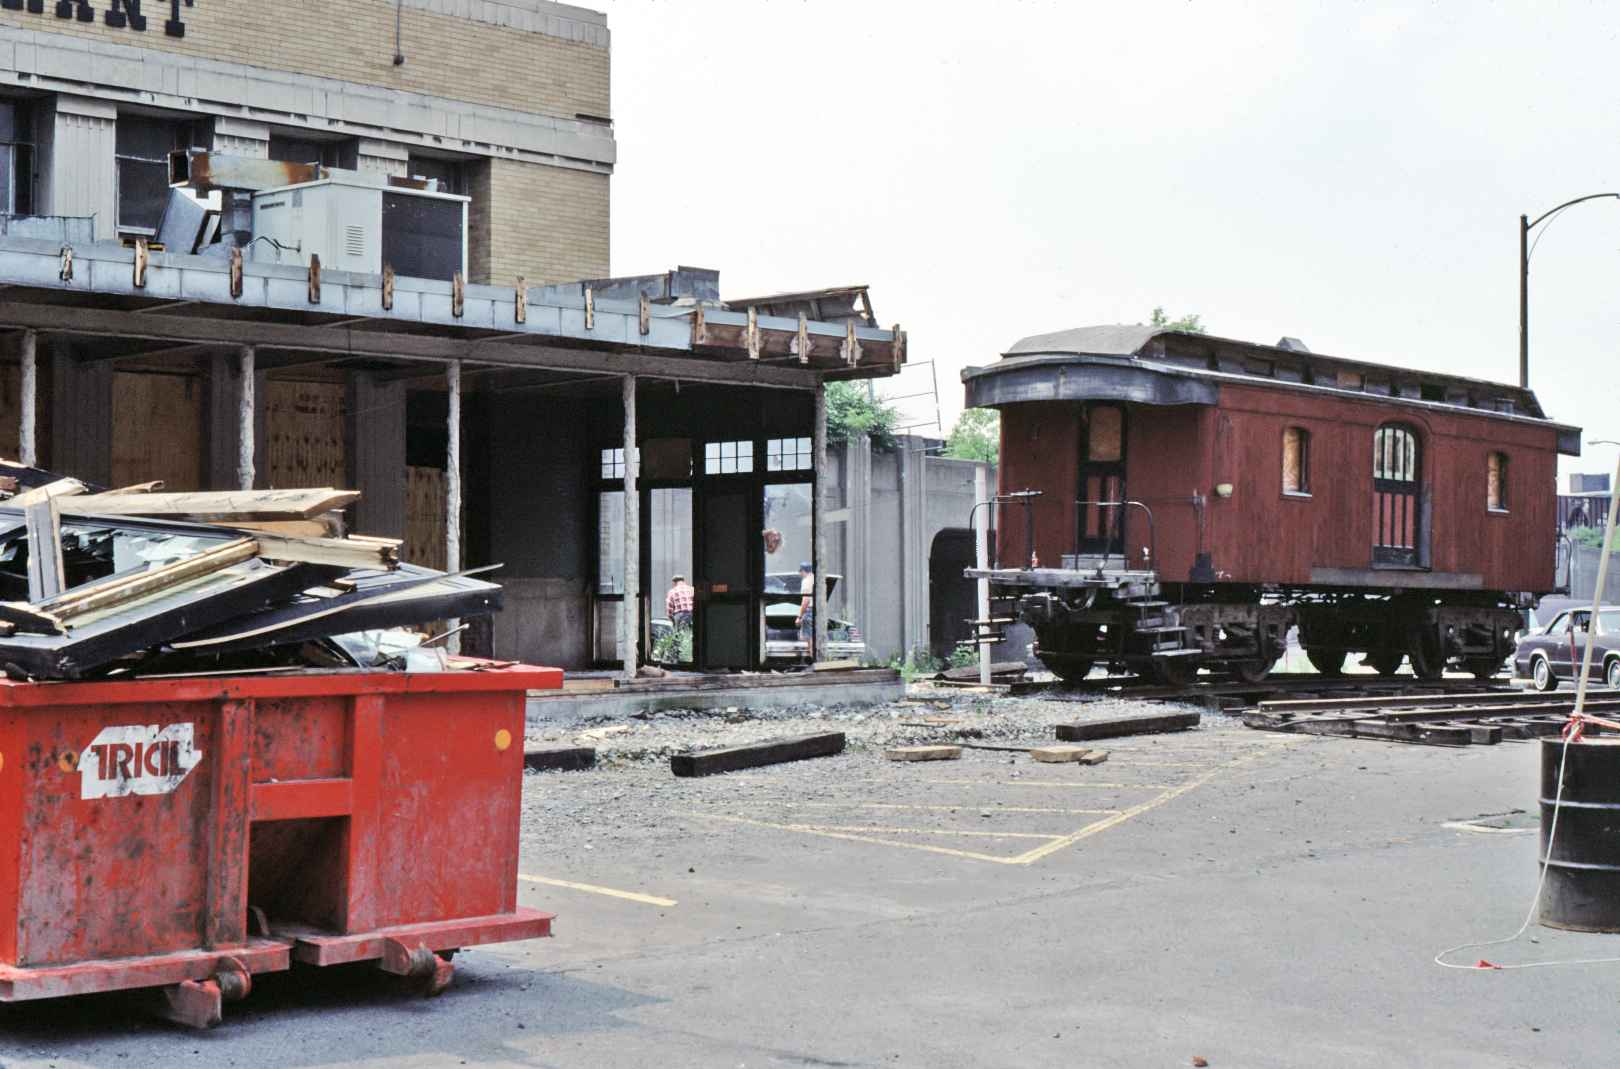 Baggage car removed from former Depot Restaurant in Syracuse